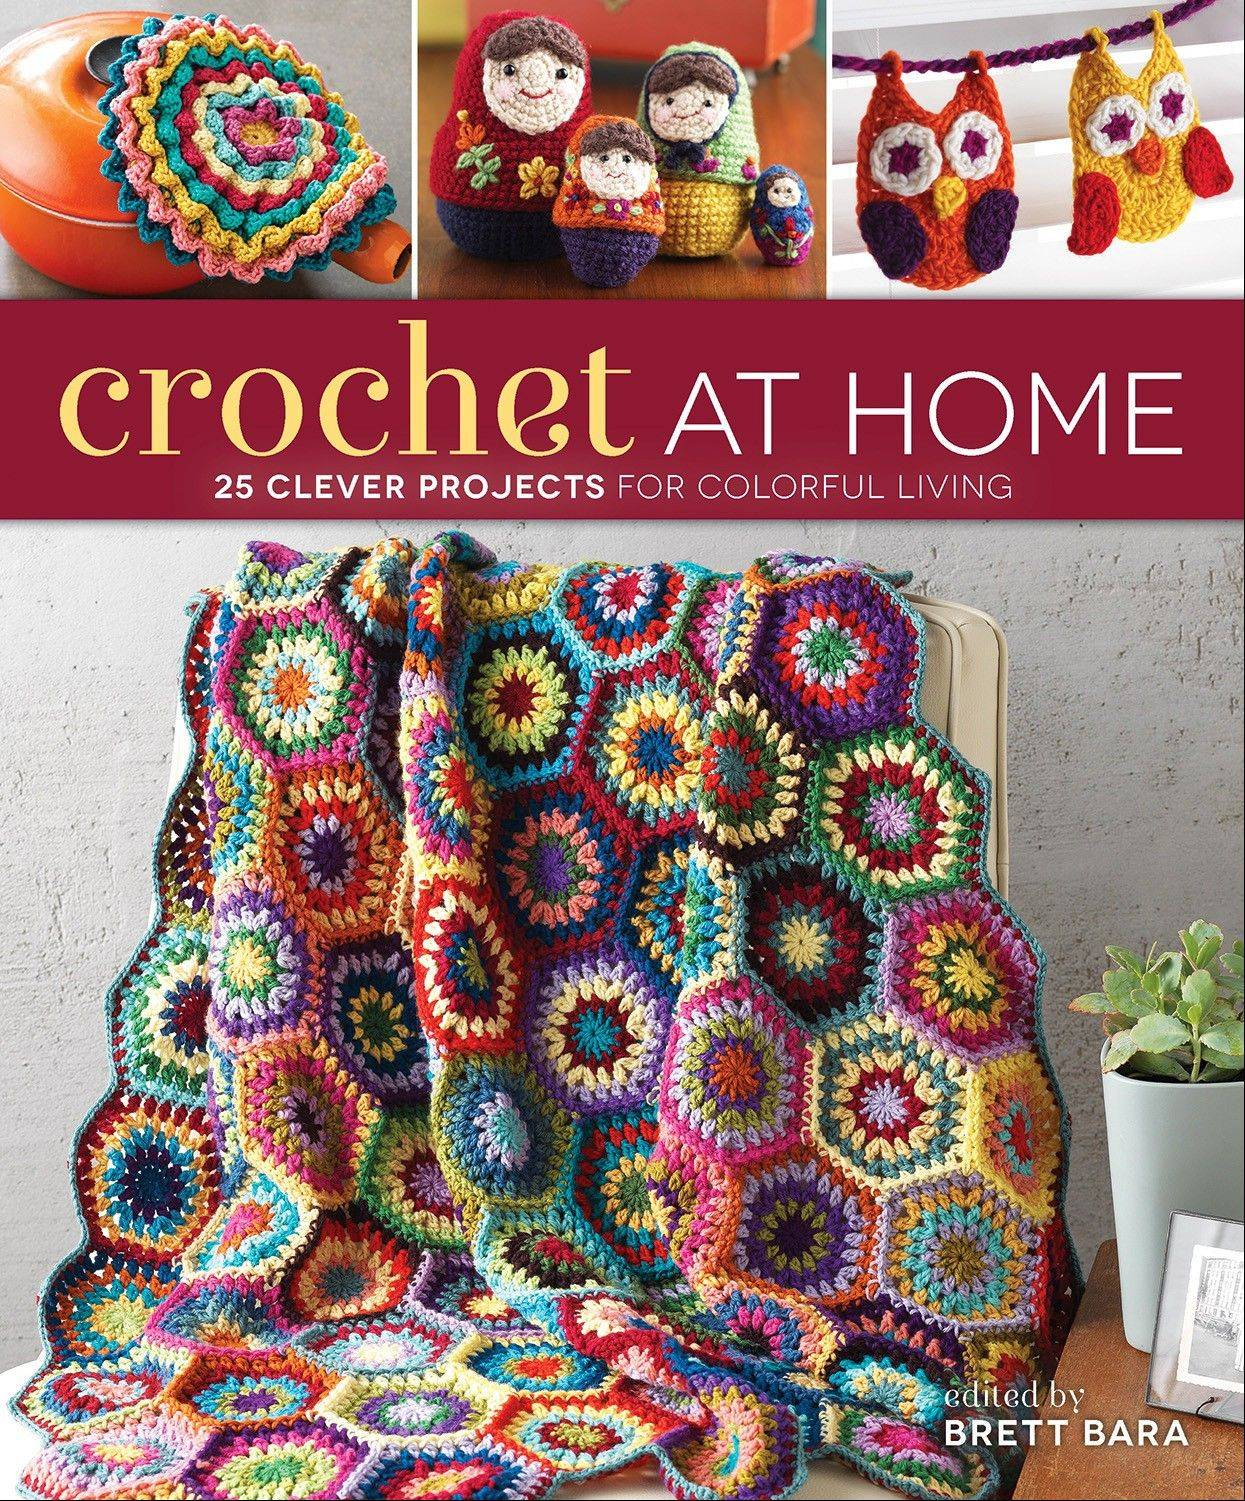 """Crochet at Home"" includes 25 projects."